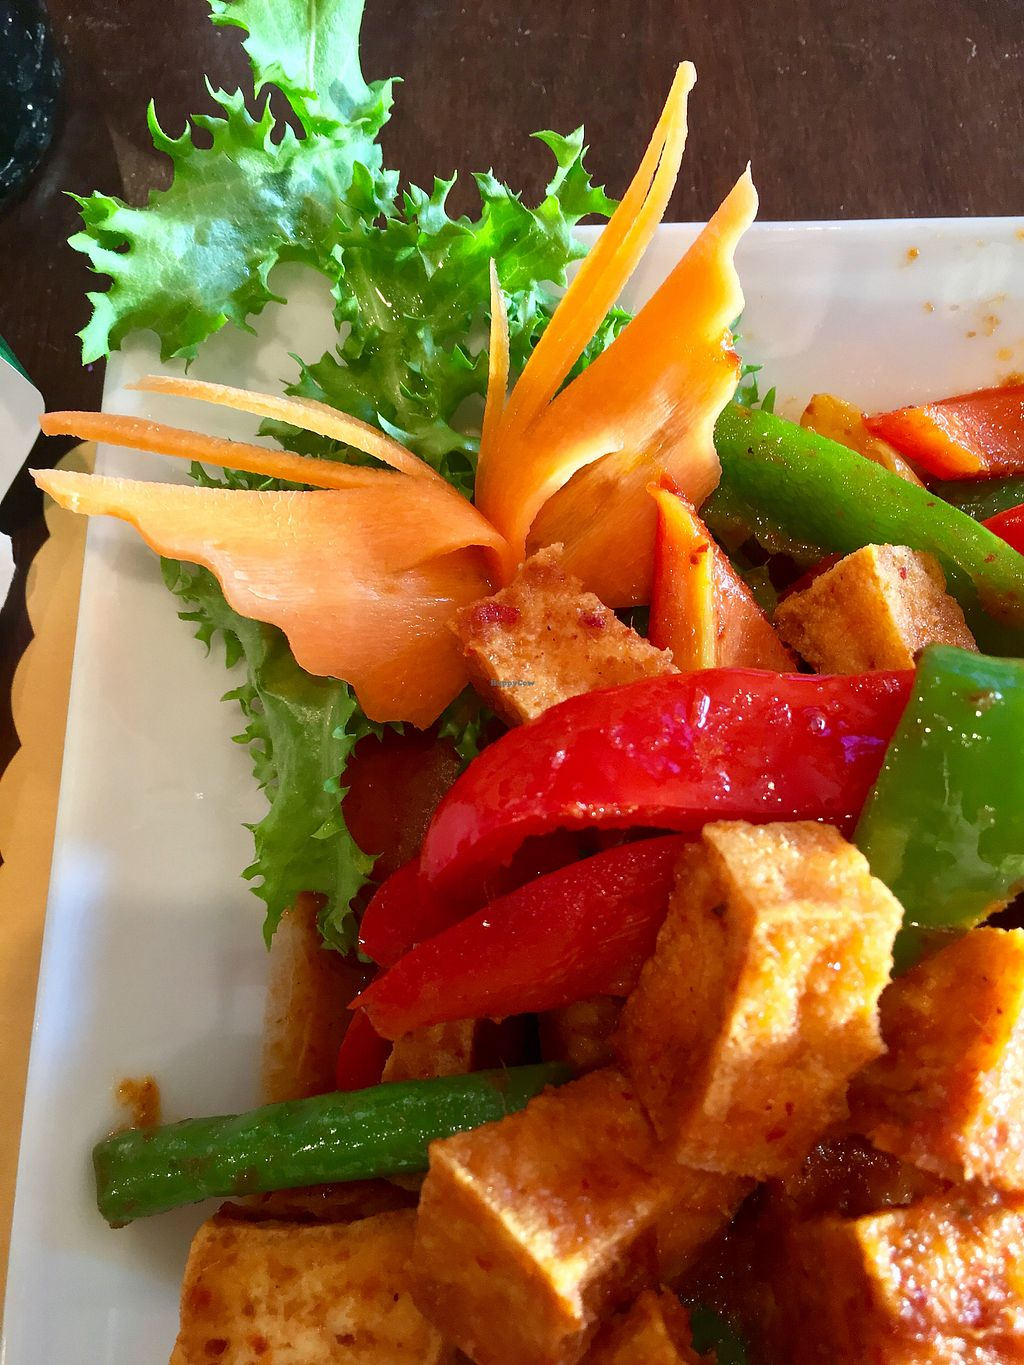 """Photo of Royal Thai  by <a href=""""/members/profile/juliaroyer_20"""">juliaroyer_20</a> <br/>Carrot Butterfly <br/> August 19, 2017  - <a href='/contact/abuse/image/91284/294128'>Report</a>"""